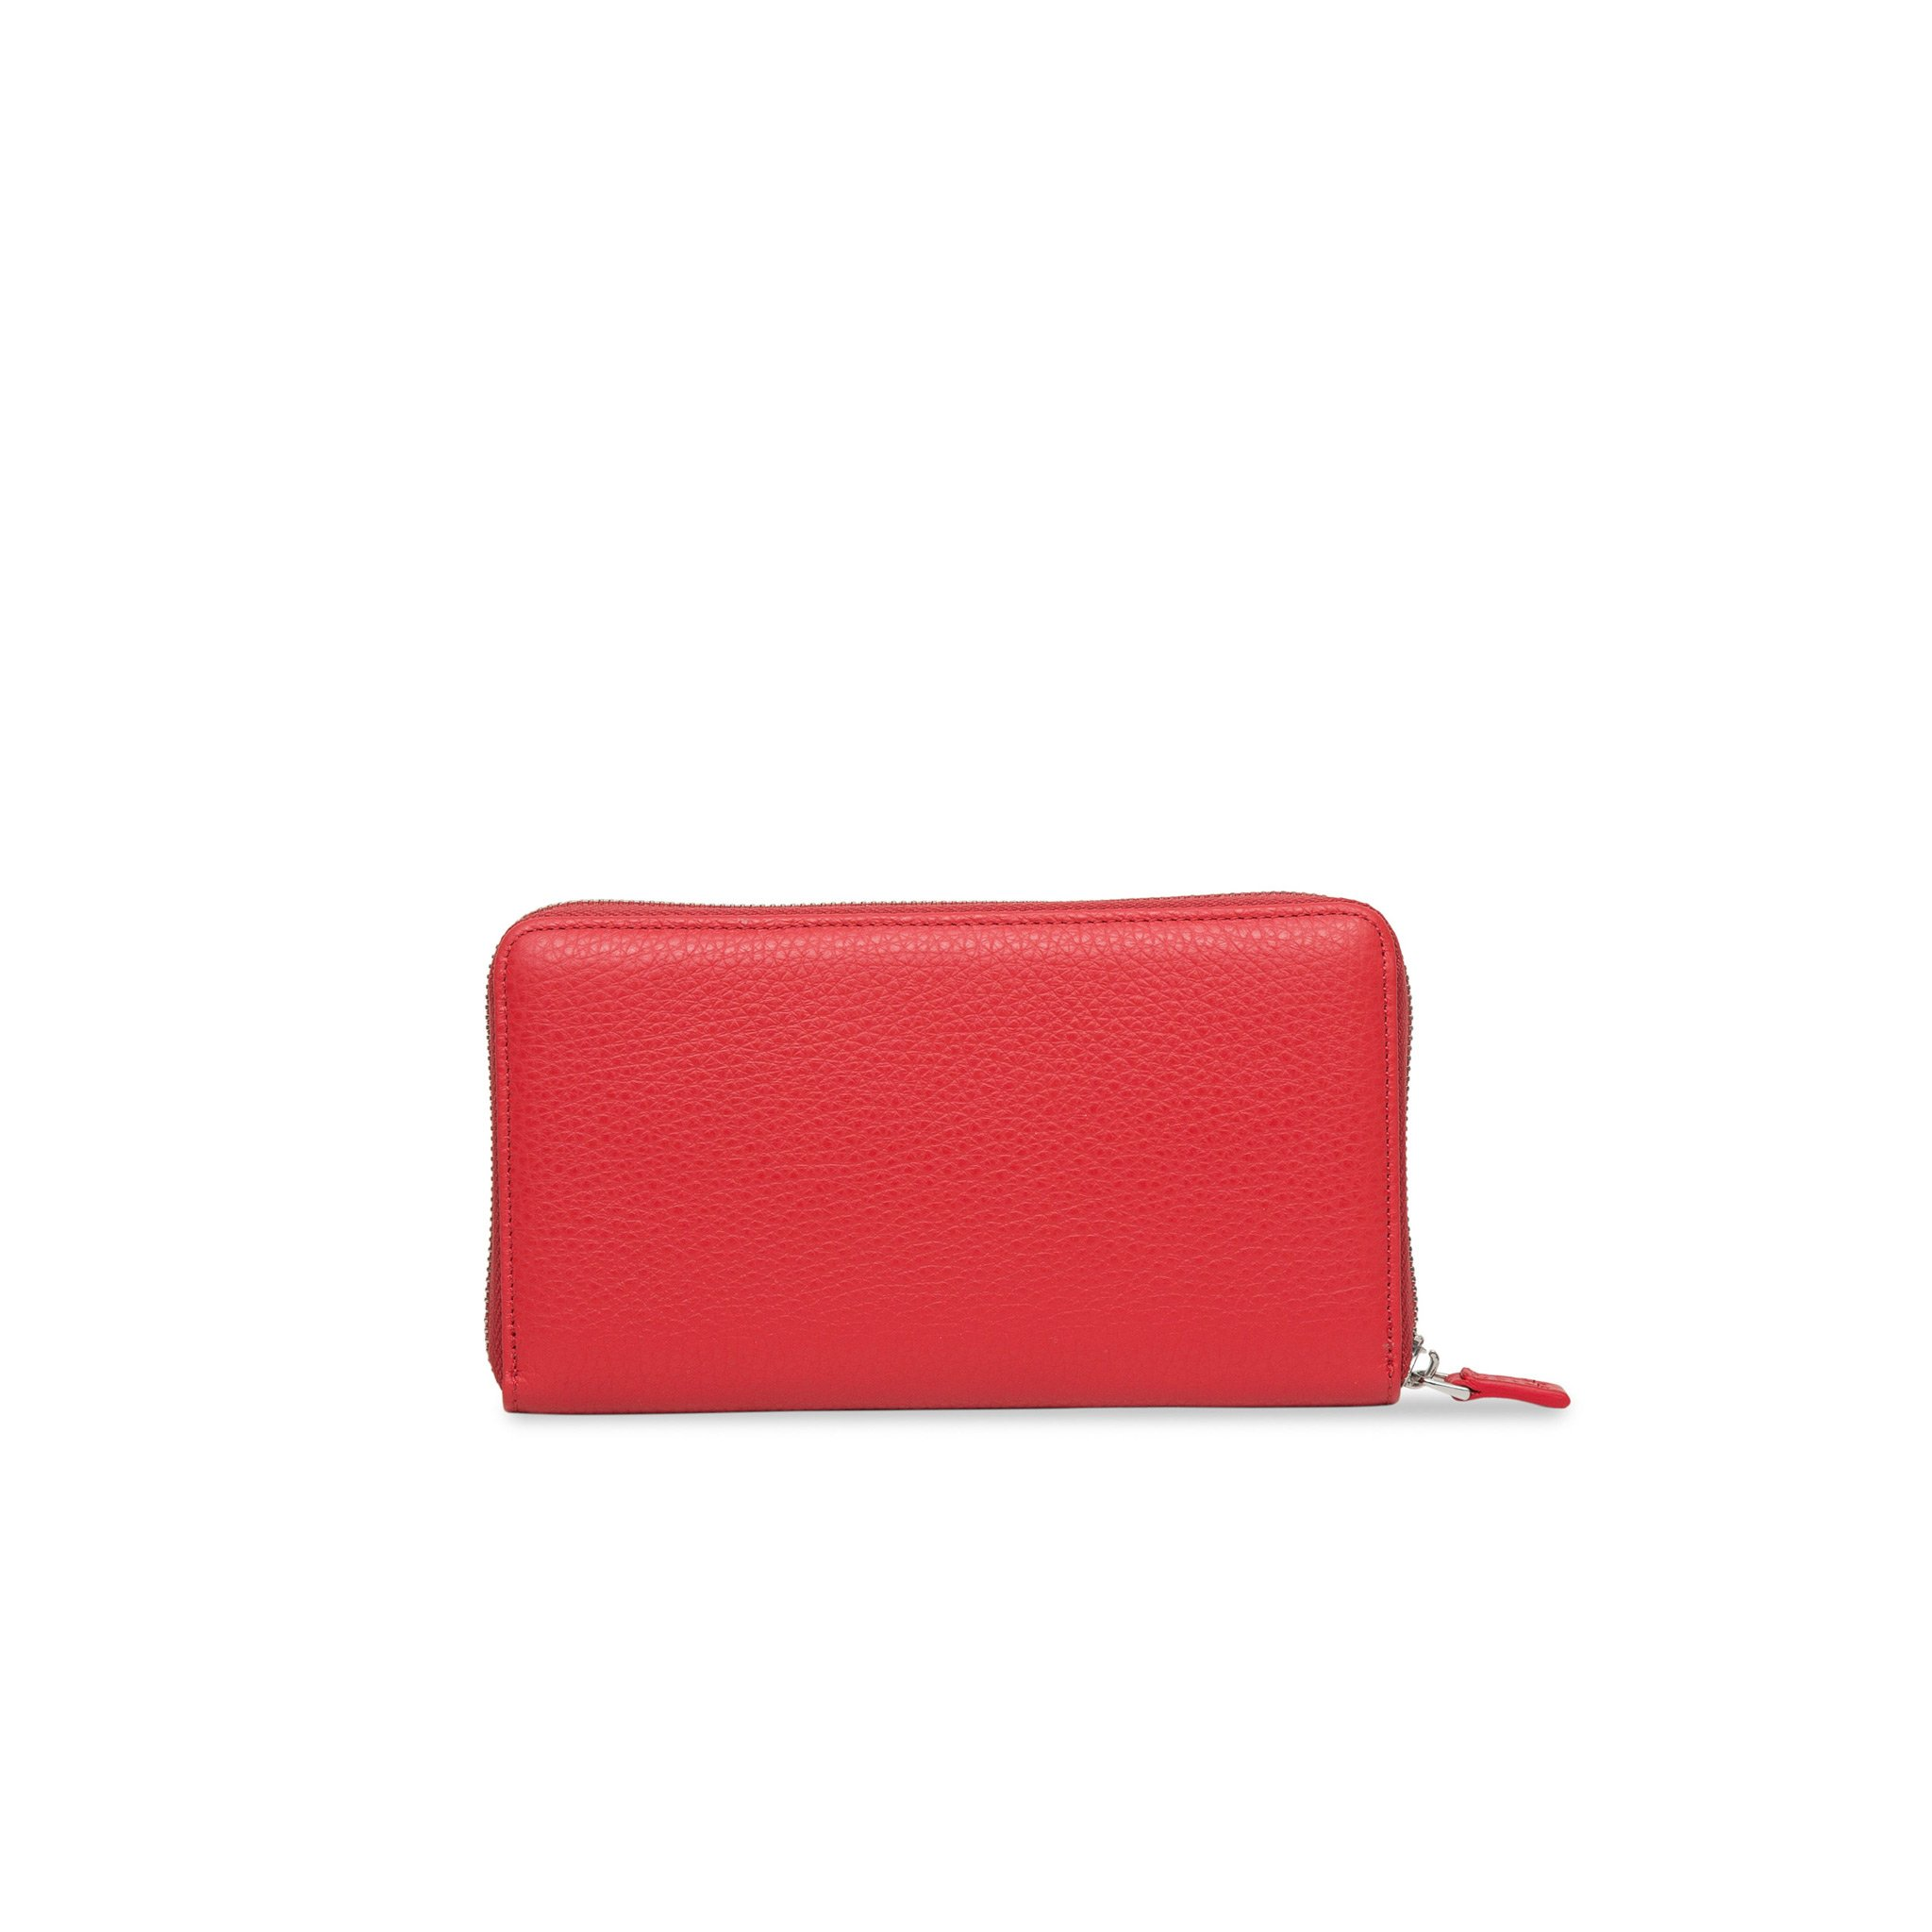 Red Zip Around leather Rock Wallet